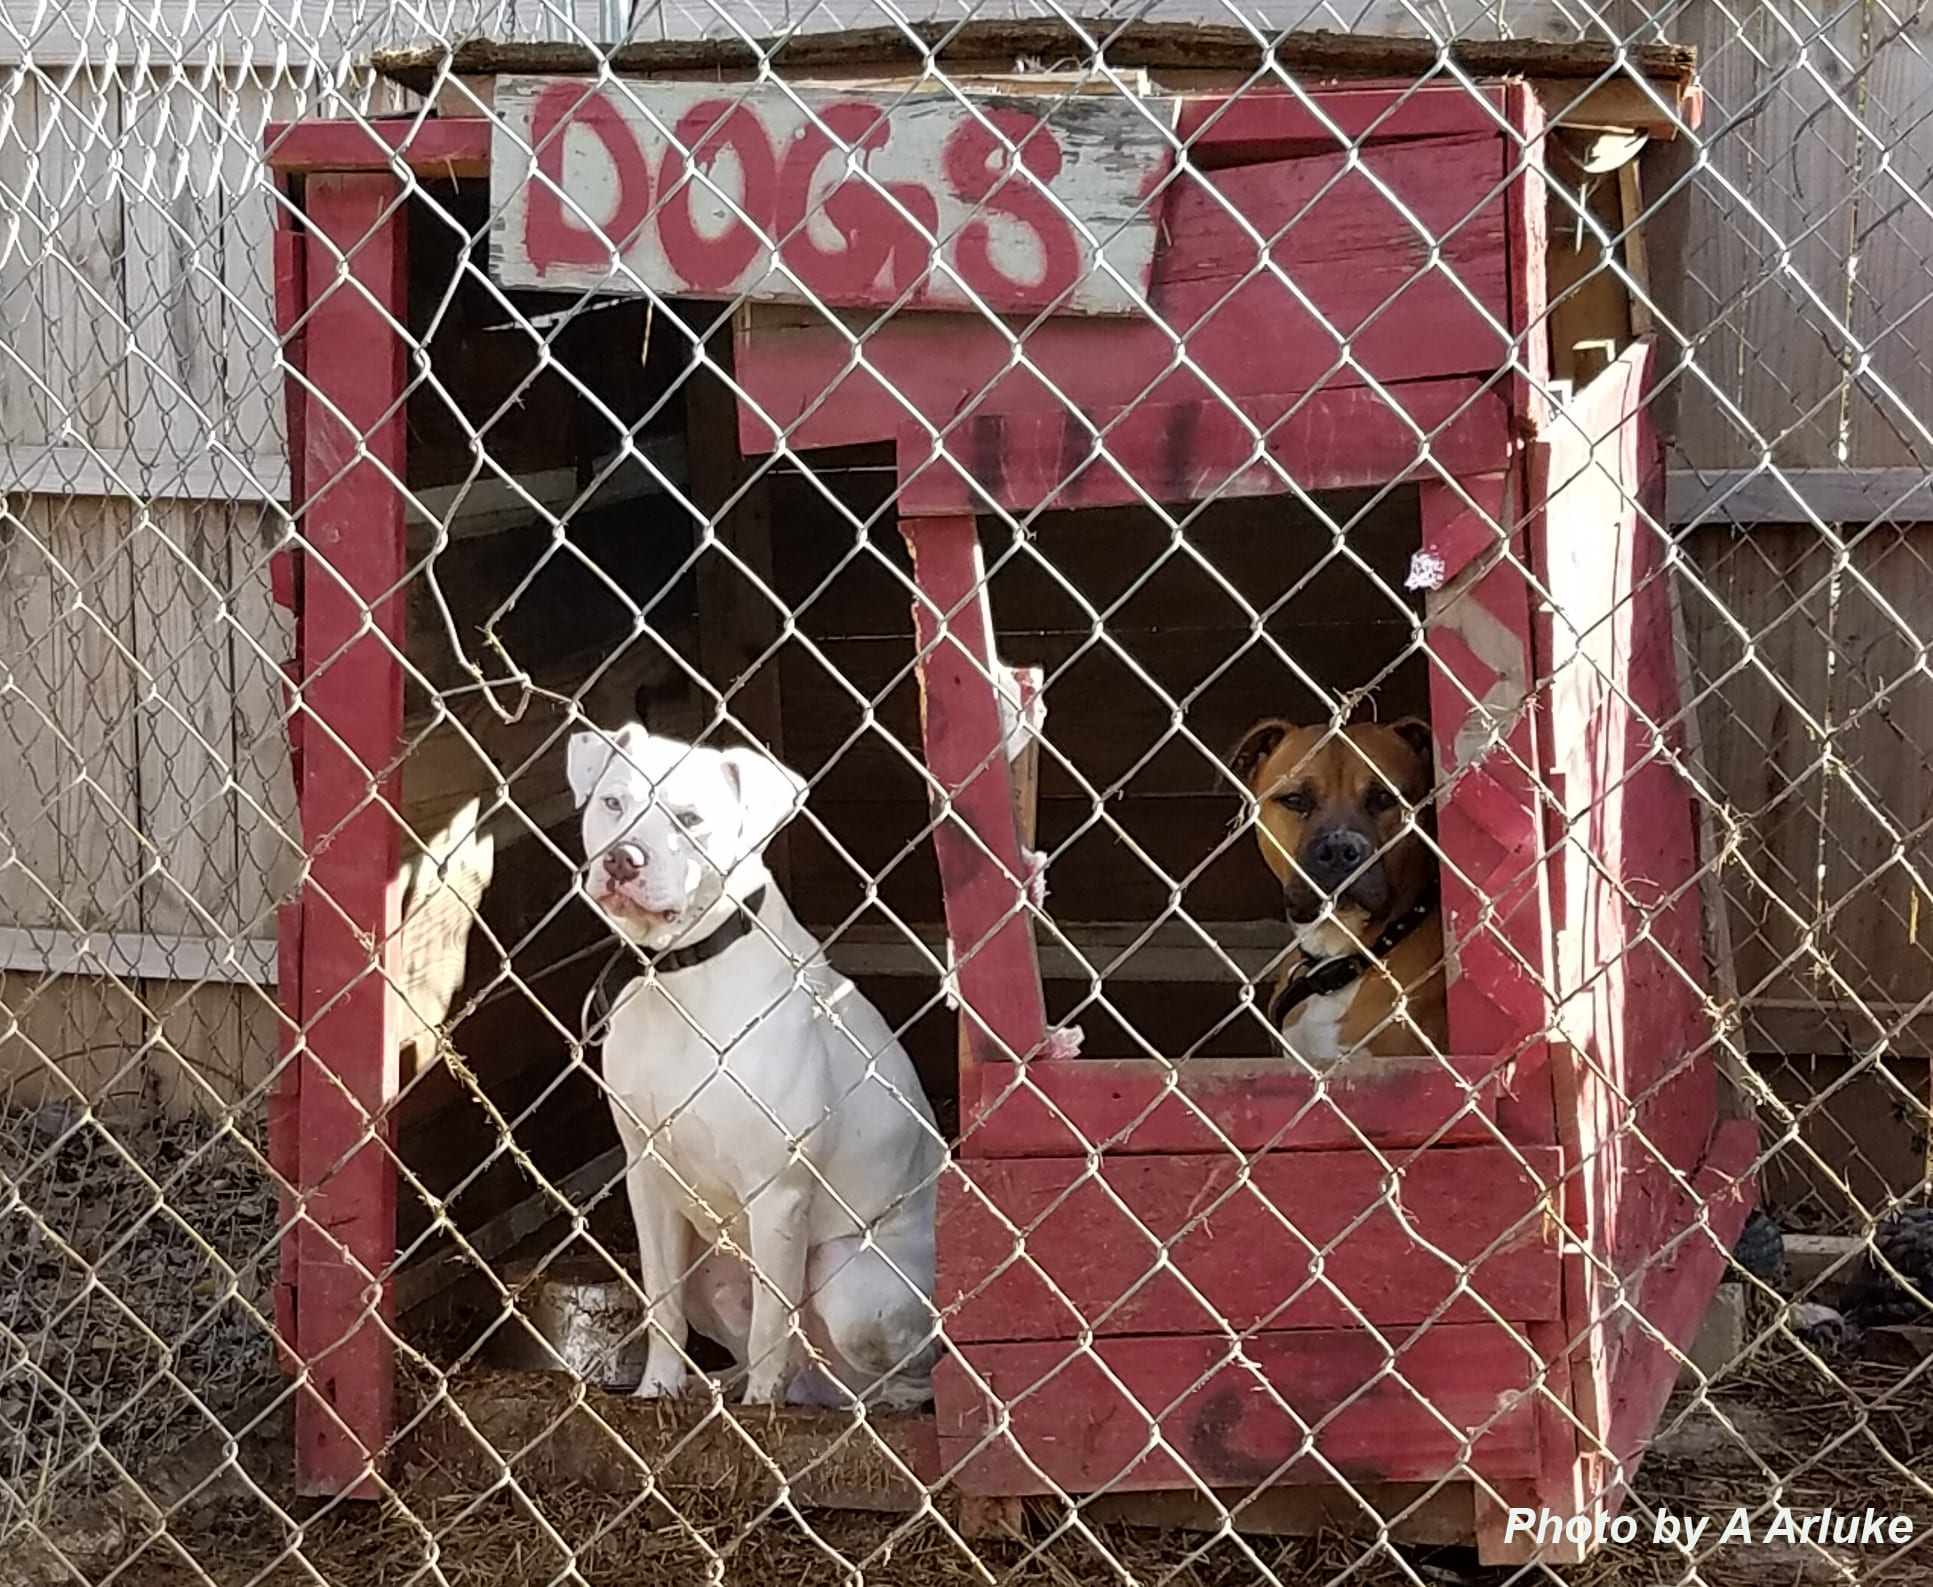 Dog In Fence in Dog House by A Arluke